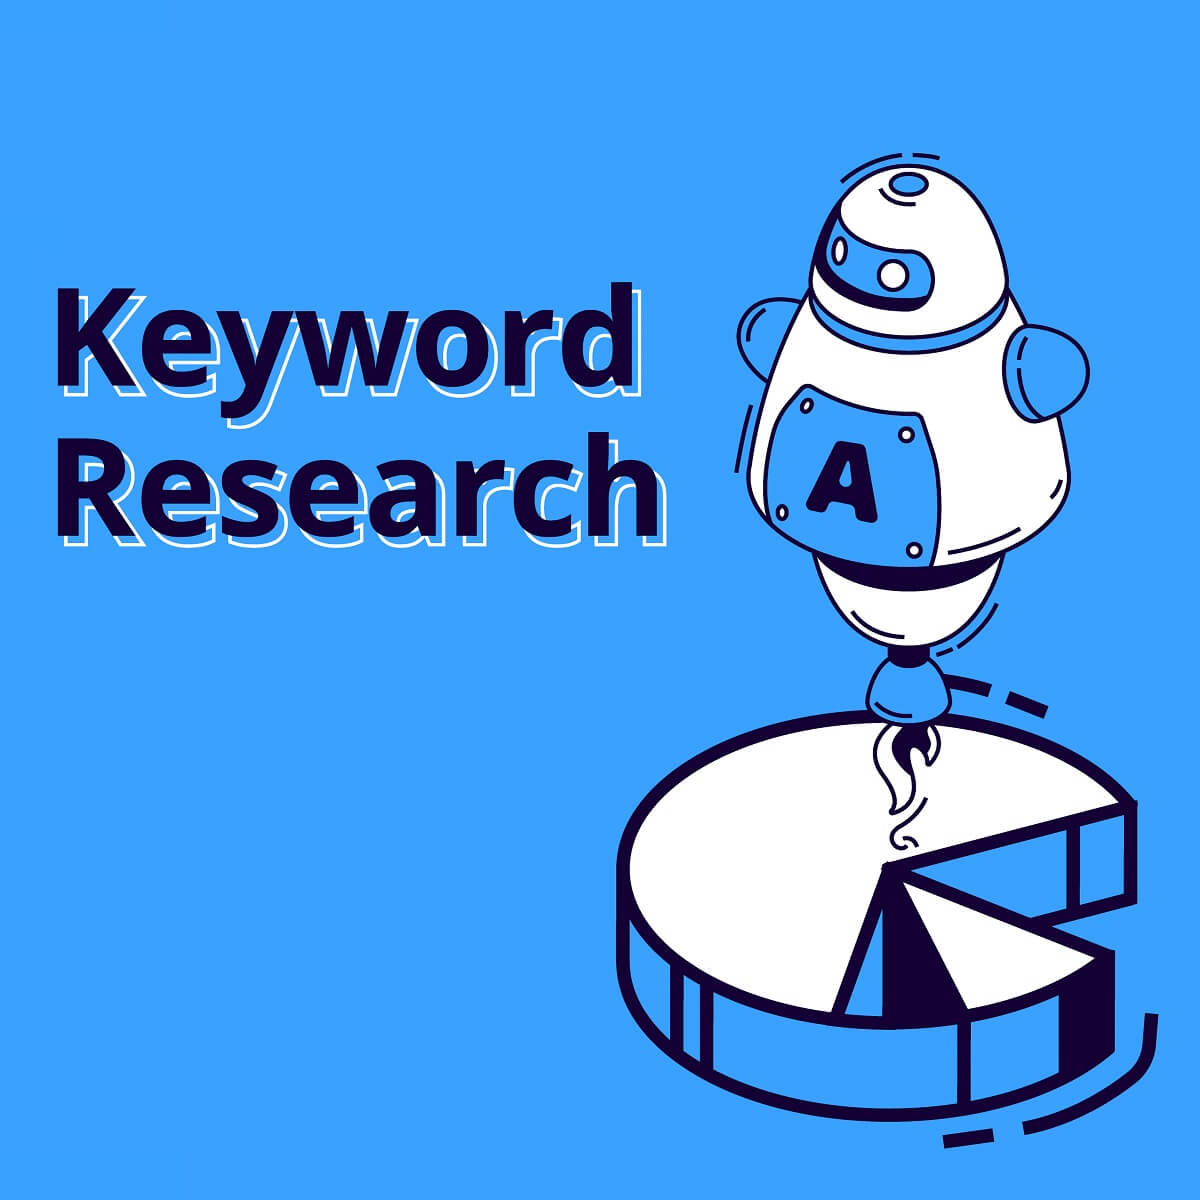 「Keyword Research」という文字の入ったロボットのイラスト。